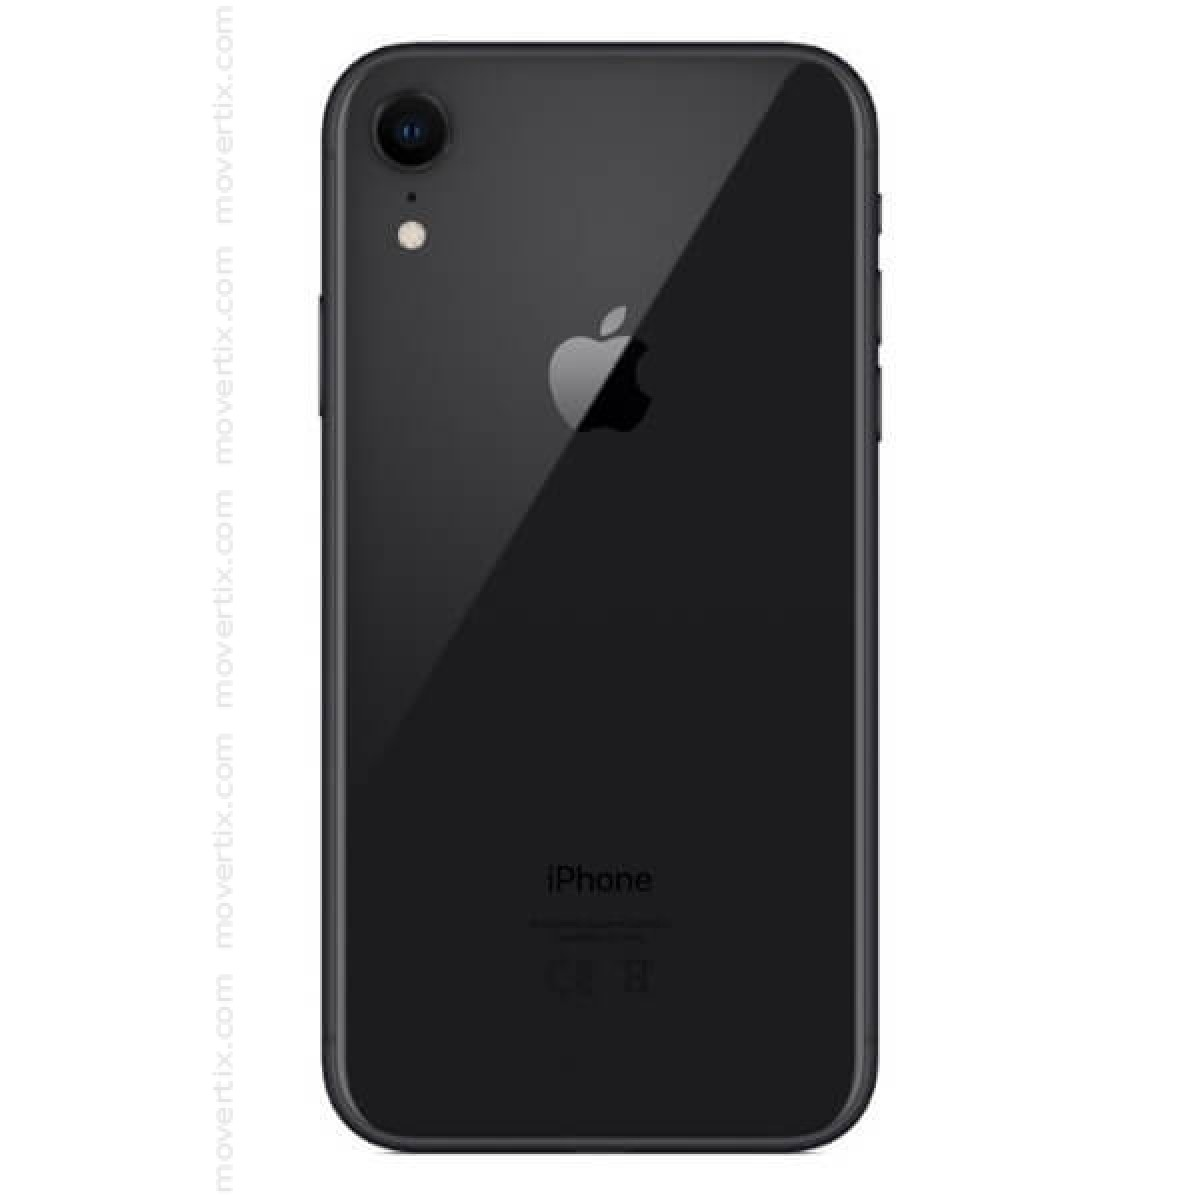 Apple iPhone XR en Negro de 128GB 0190198772541  Movertix Tienda de mviles libres